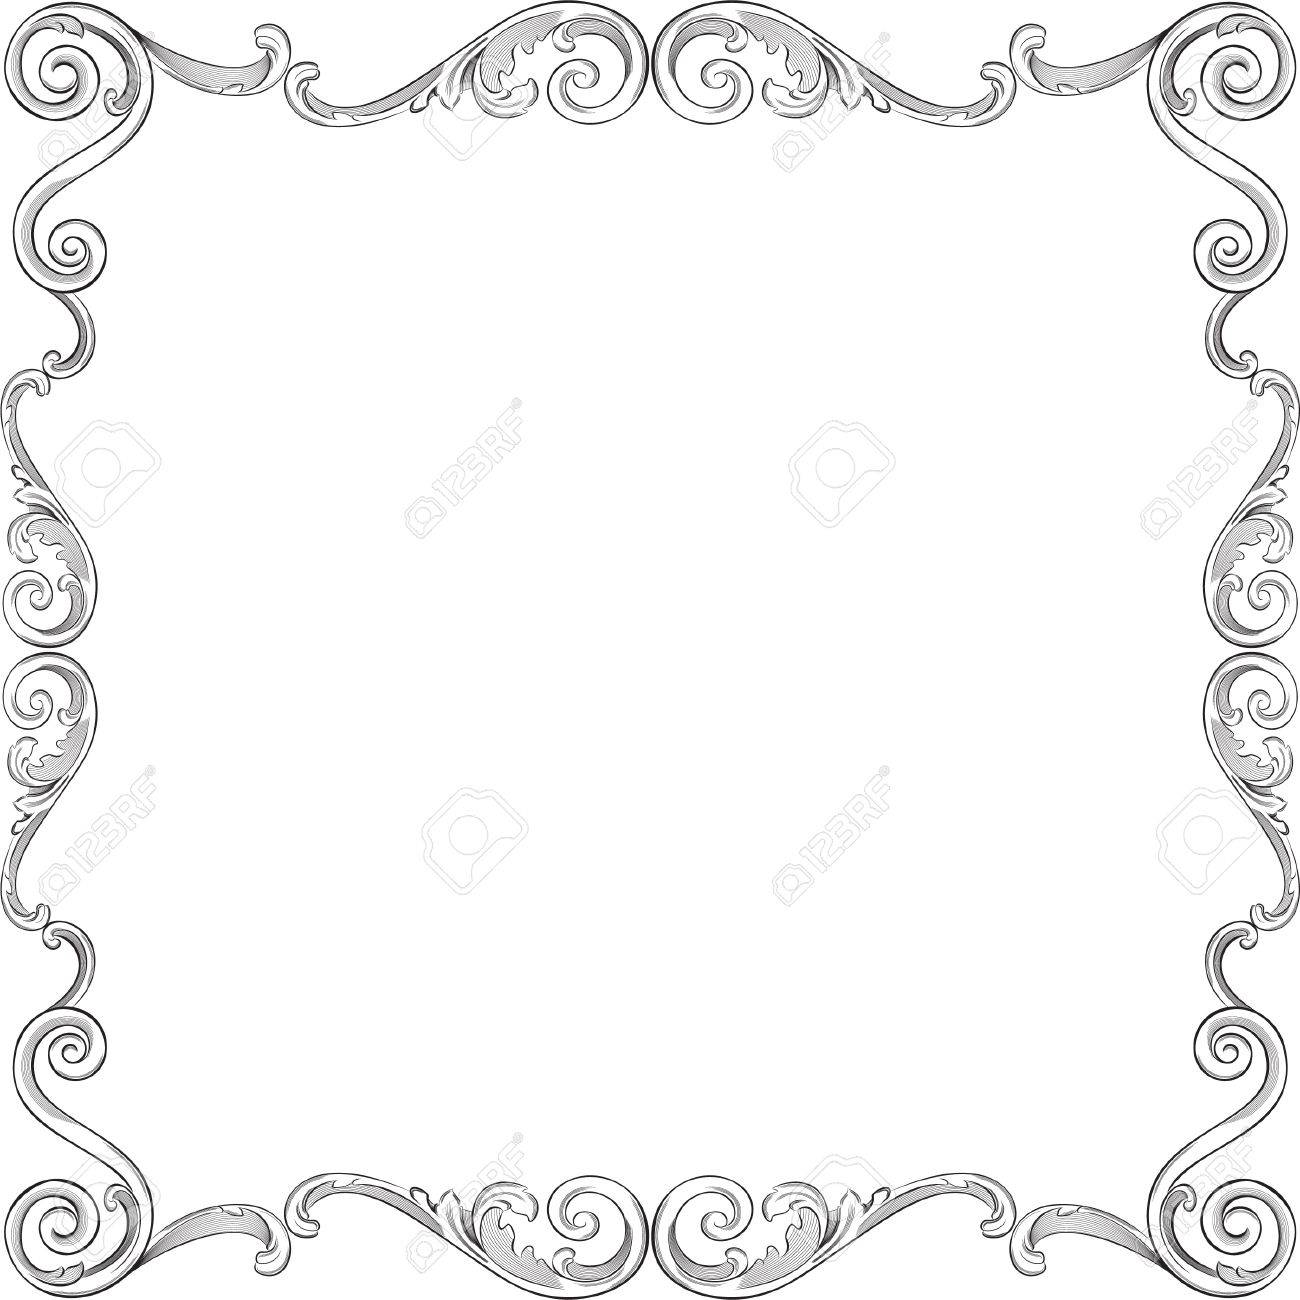 engraving pattern of nice frame stock vector 11998290